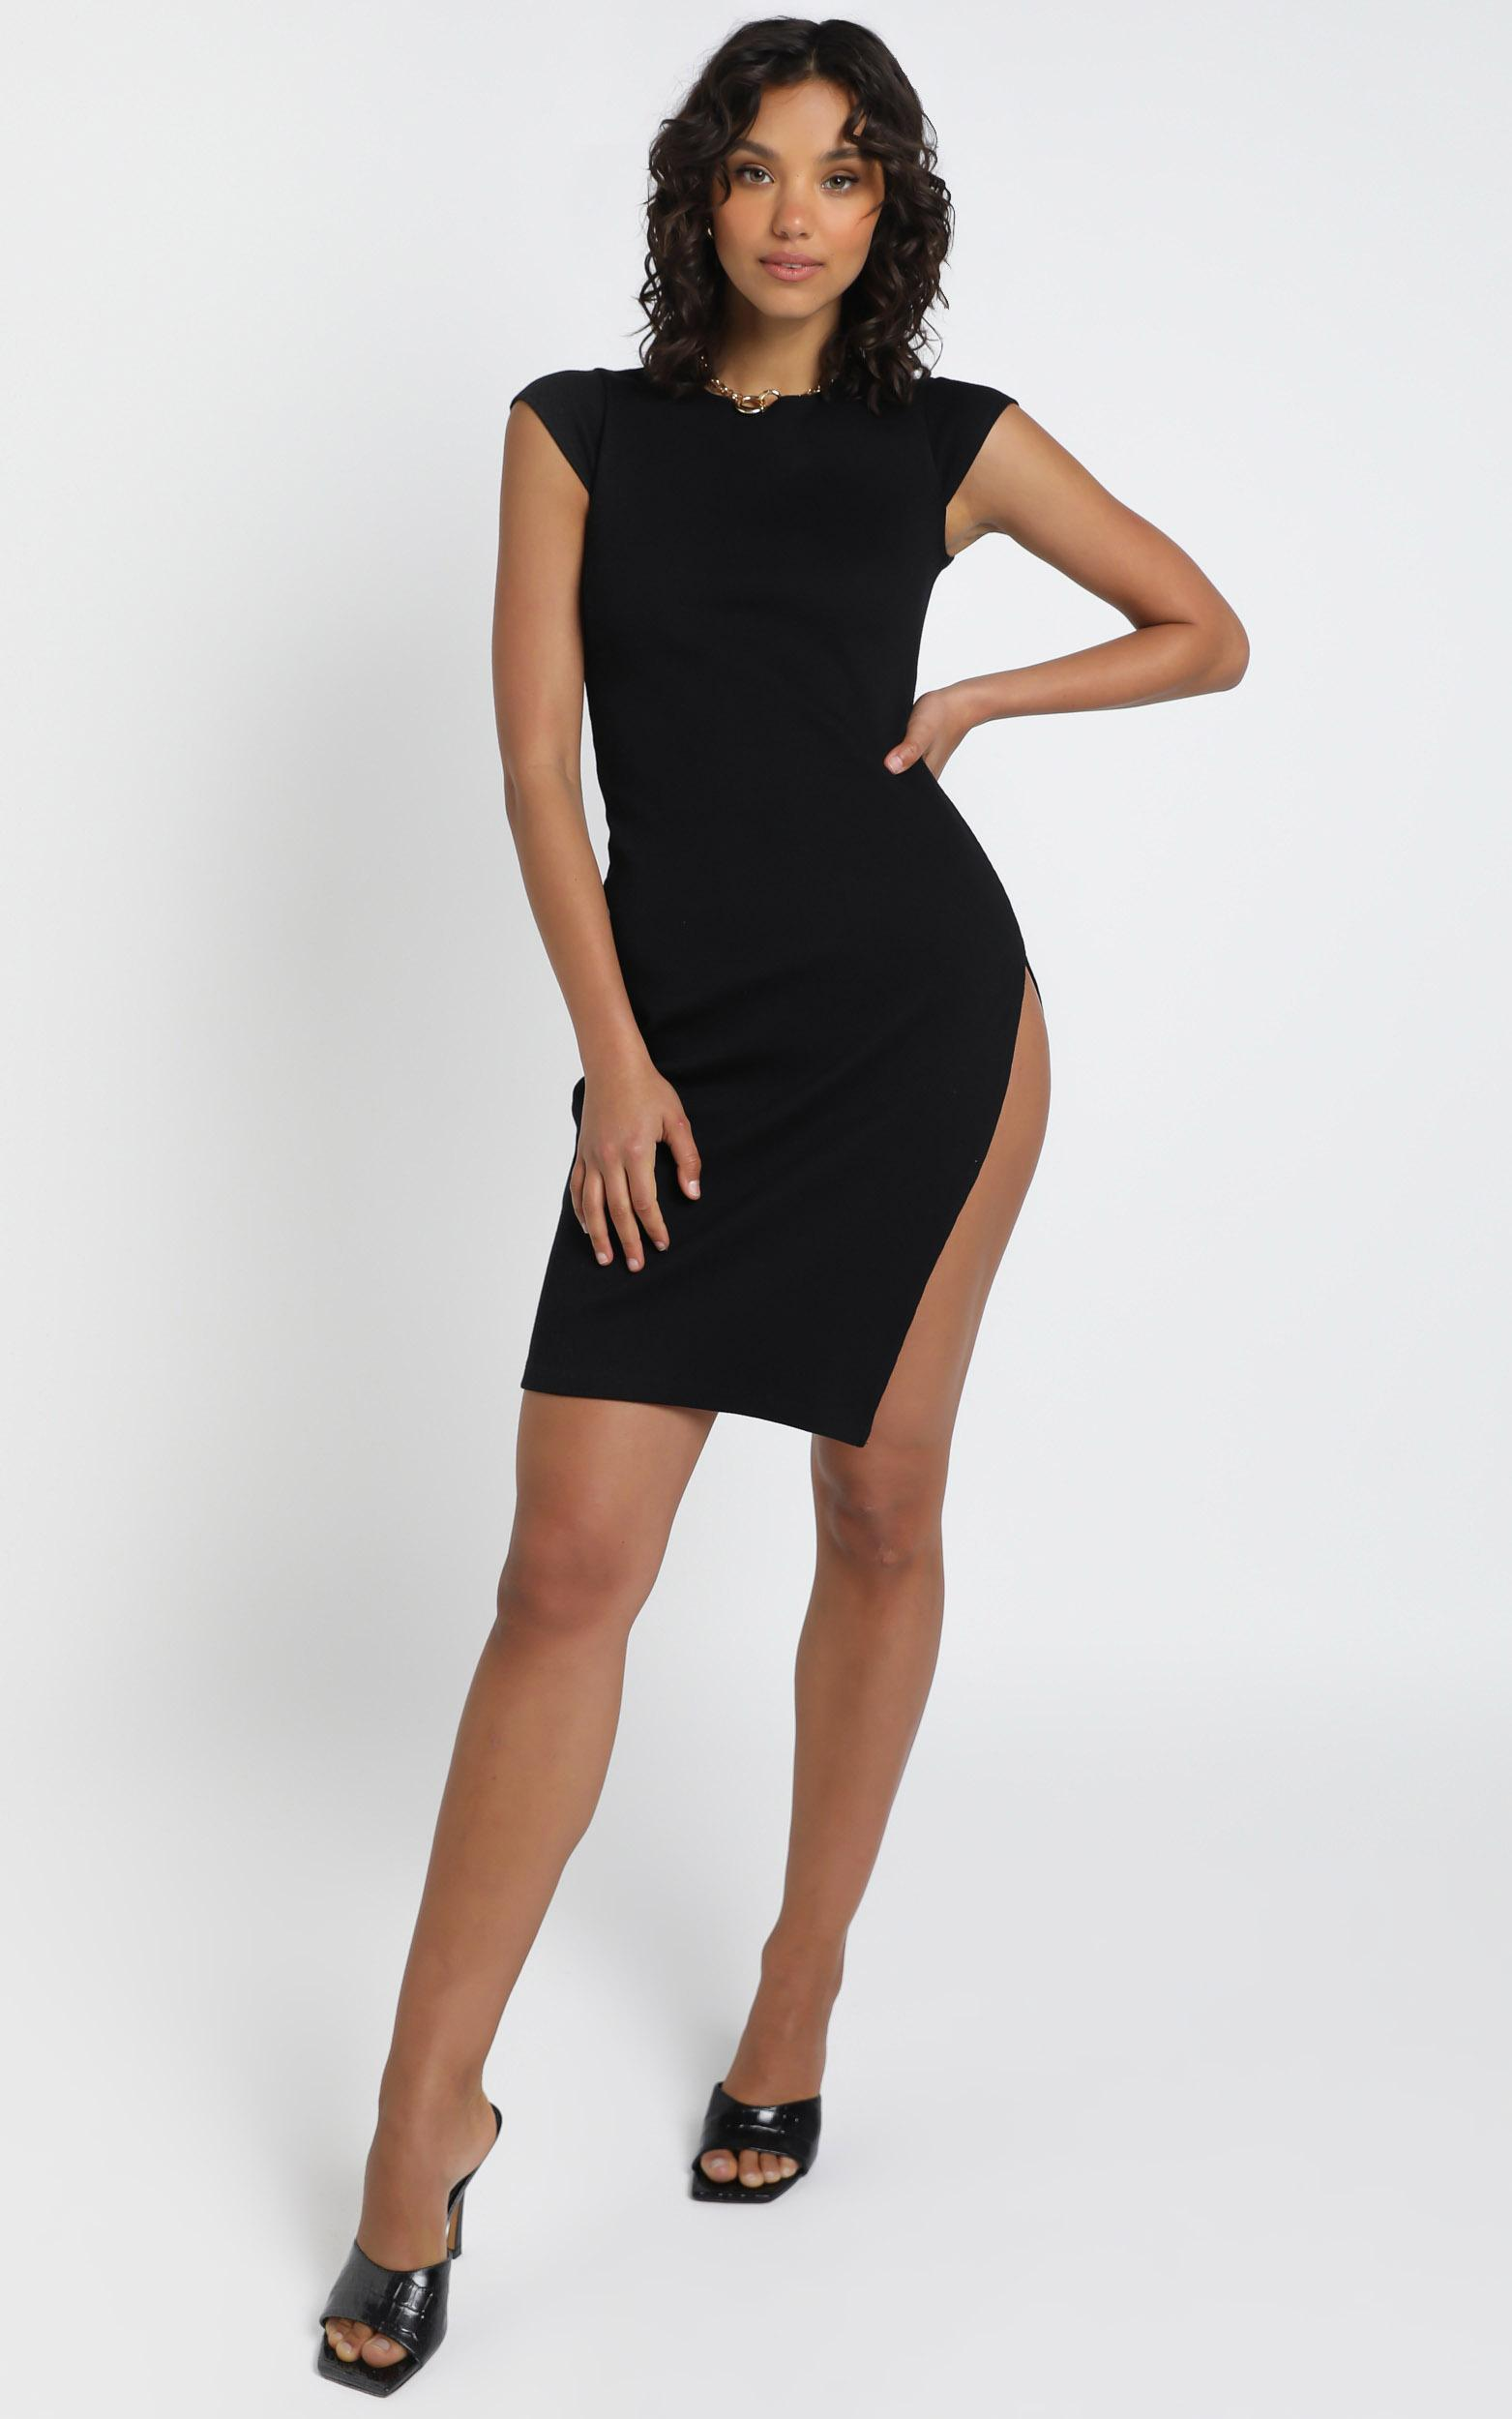 Lioness - Don't Blame me Midi dress in Black - 6 (XS), Black, hi-res image number null